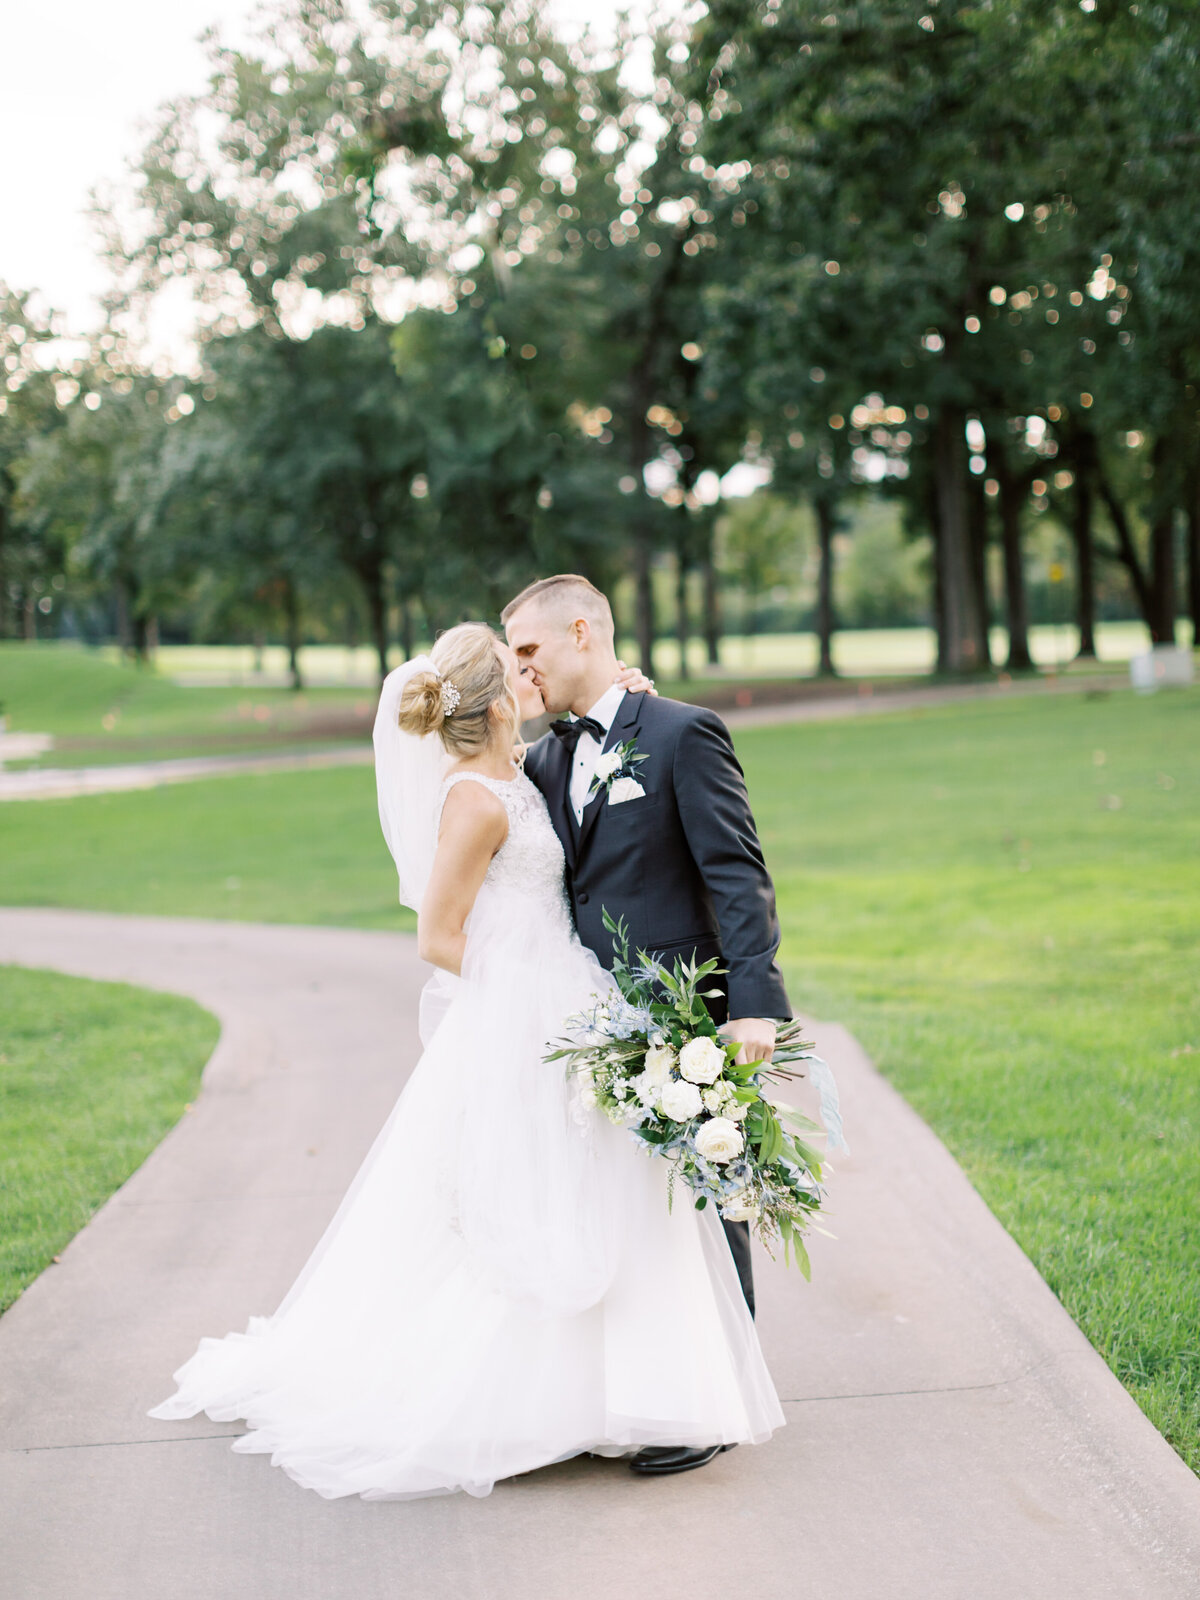 TiffaneyChildsPhotography-ChicagoWeddingPhotographer-Caitlin+Devin-MedinahCountryClubWedding-BridalPortraits-70